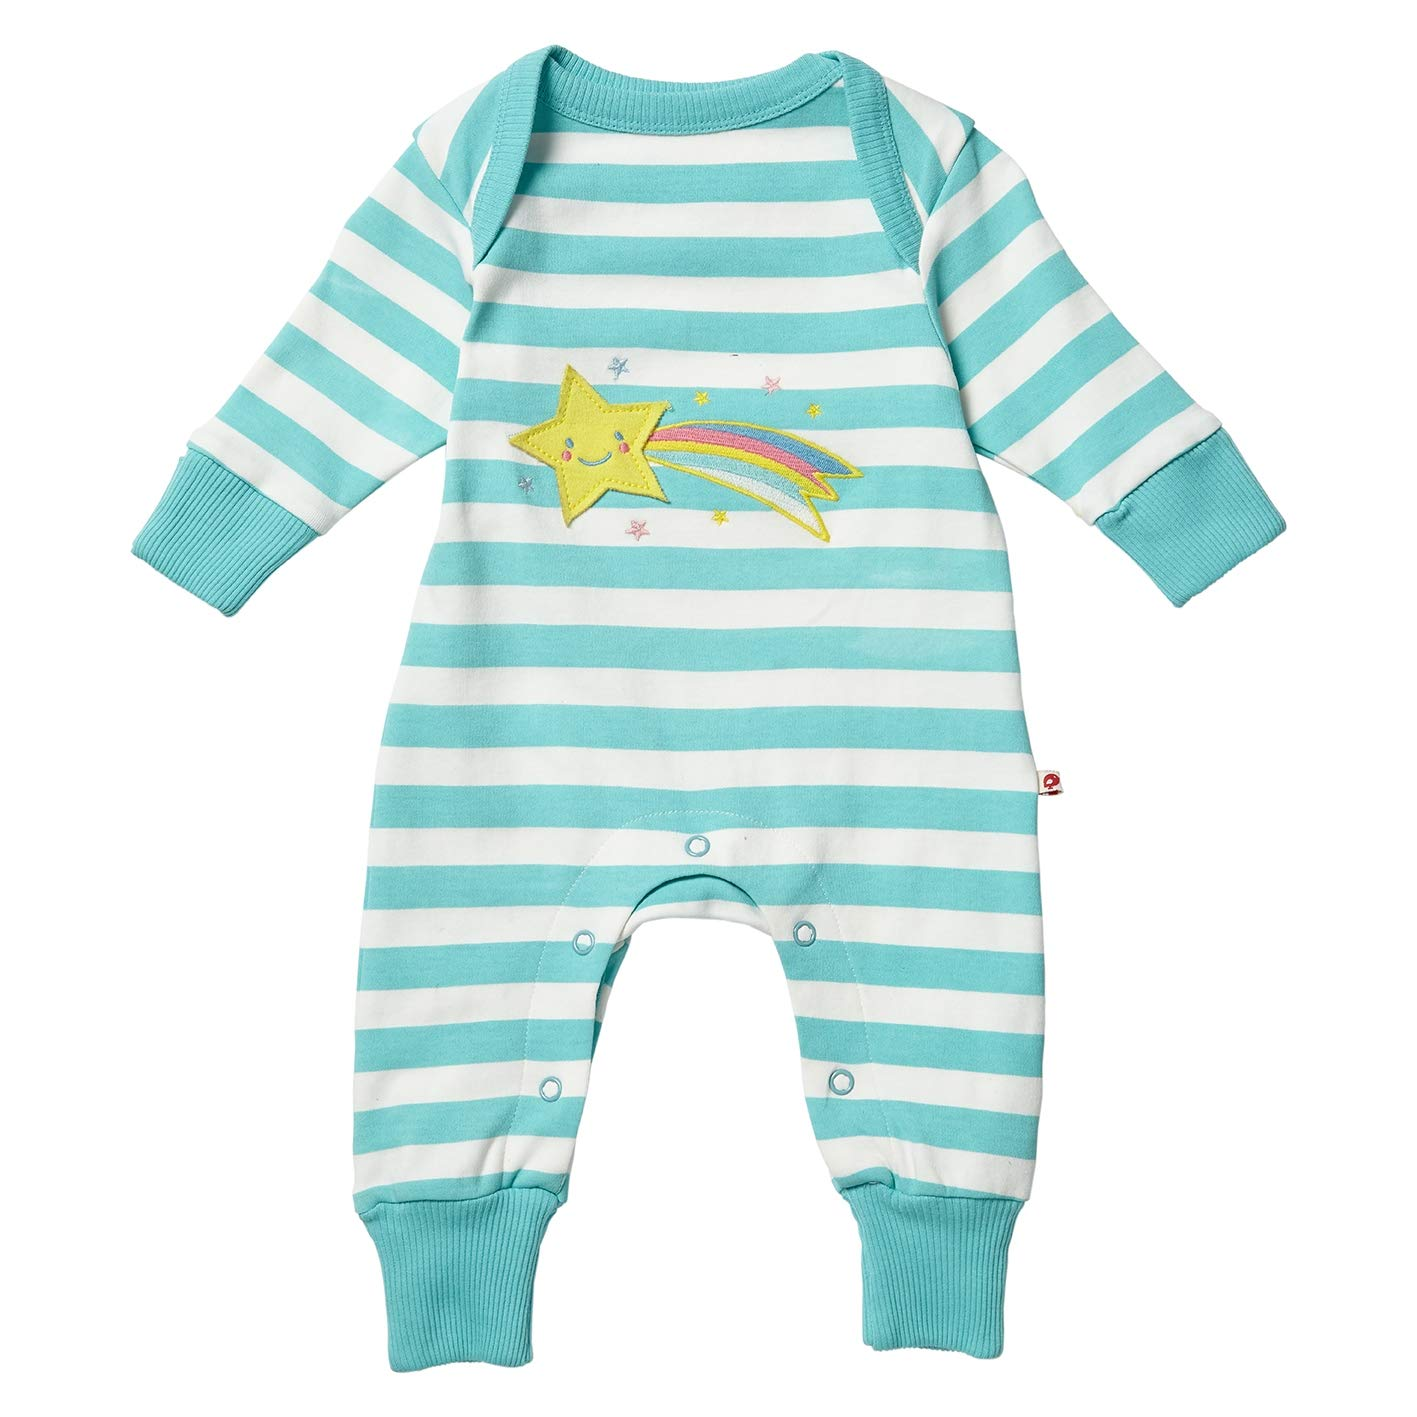 Piccalilly Organic Cotton Baby Girls Turquoise Stripe Shooting Star Applique Playsuit